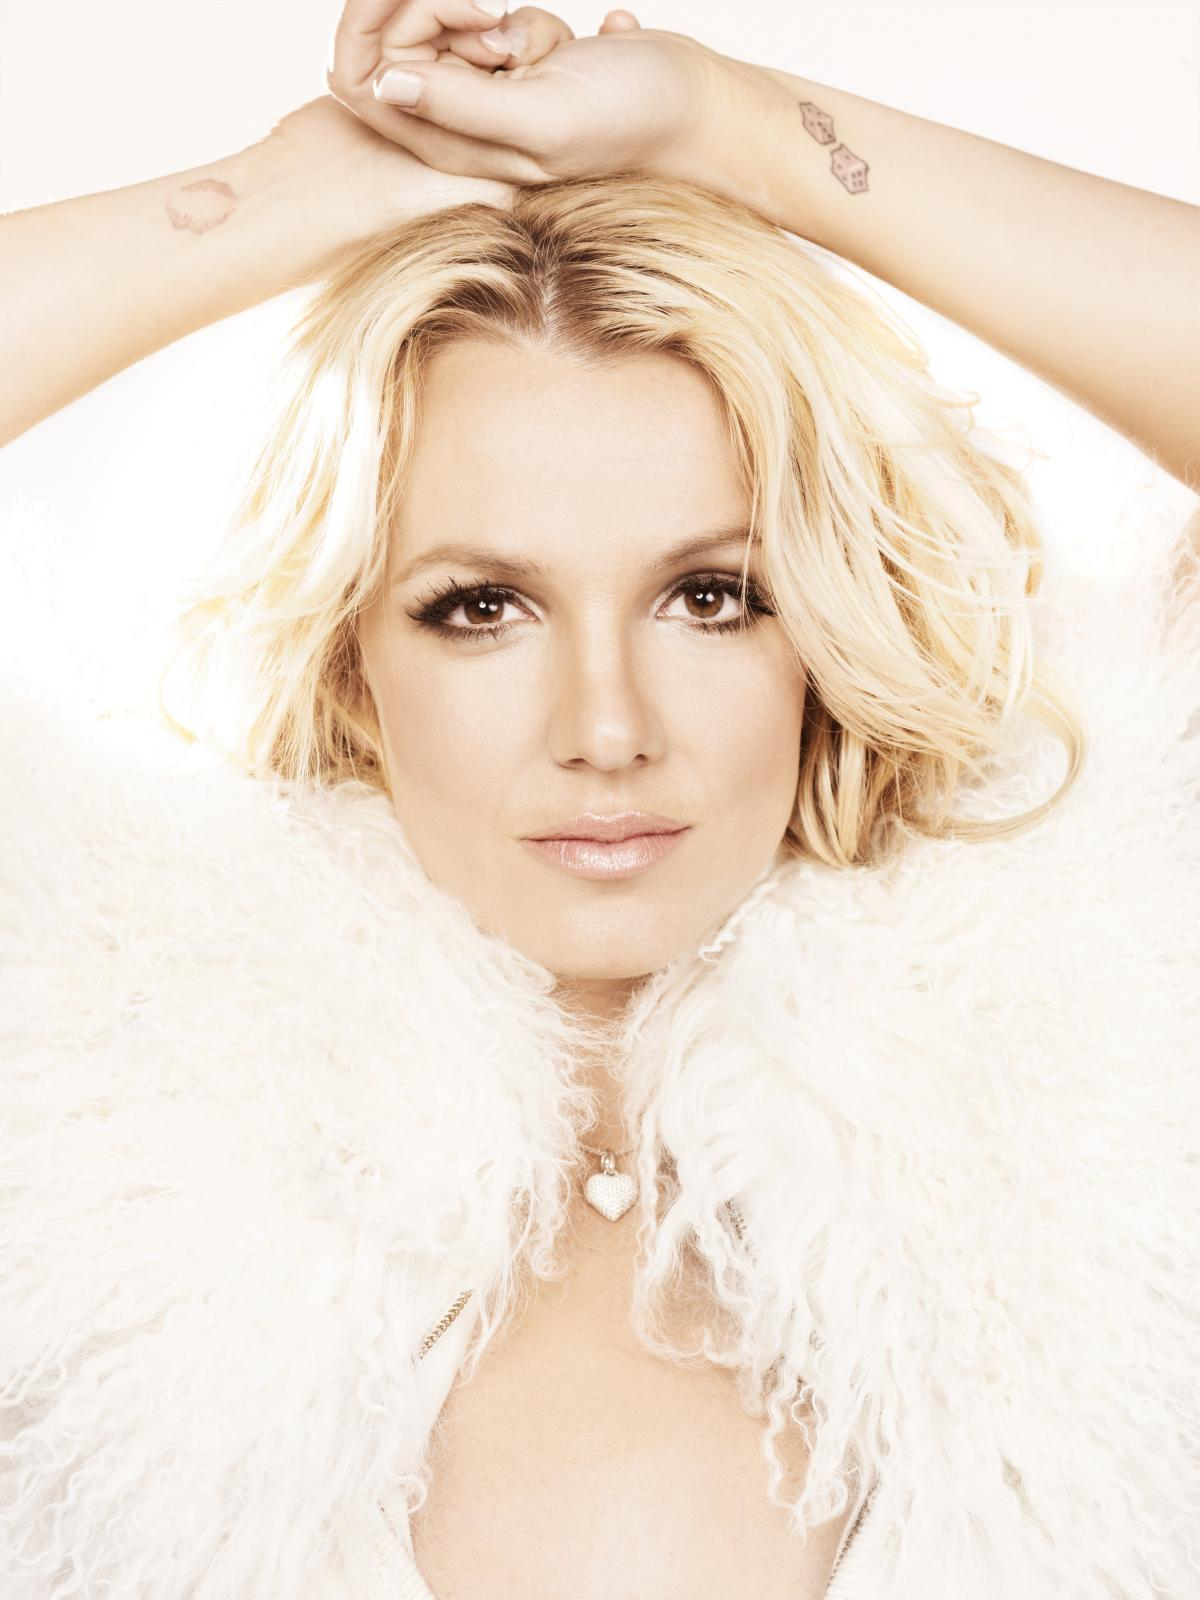 Preview Britney Spears' 'V' Magazine Photoshoot - That ... Britney